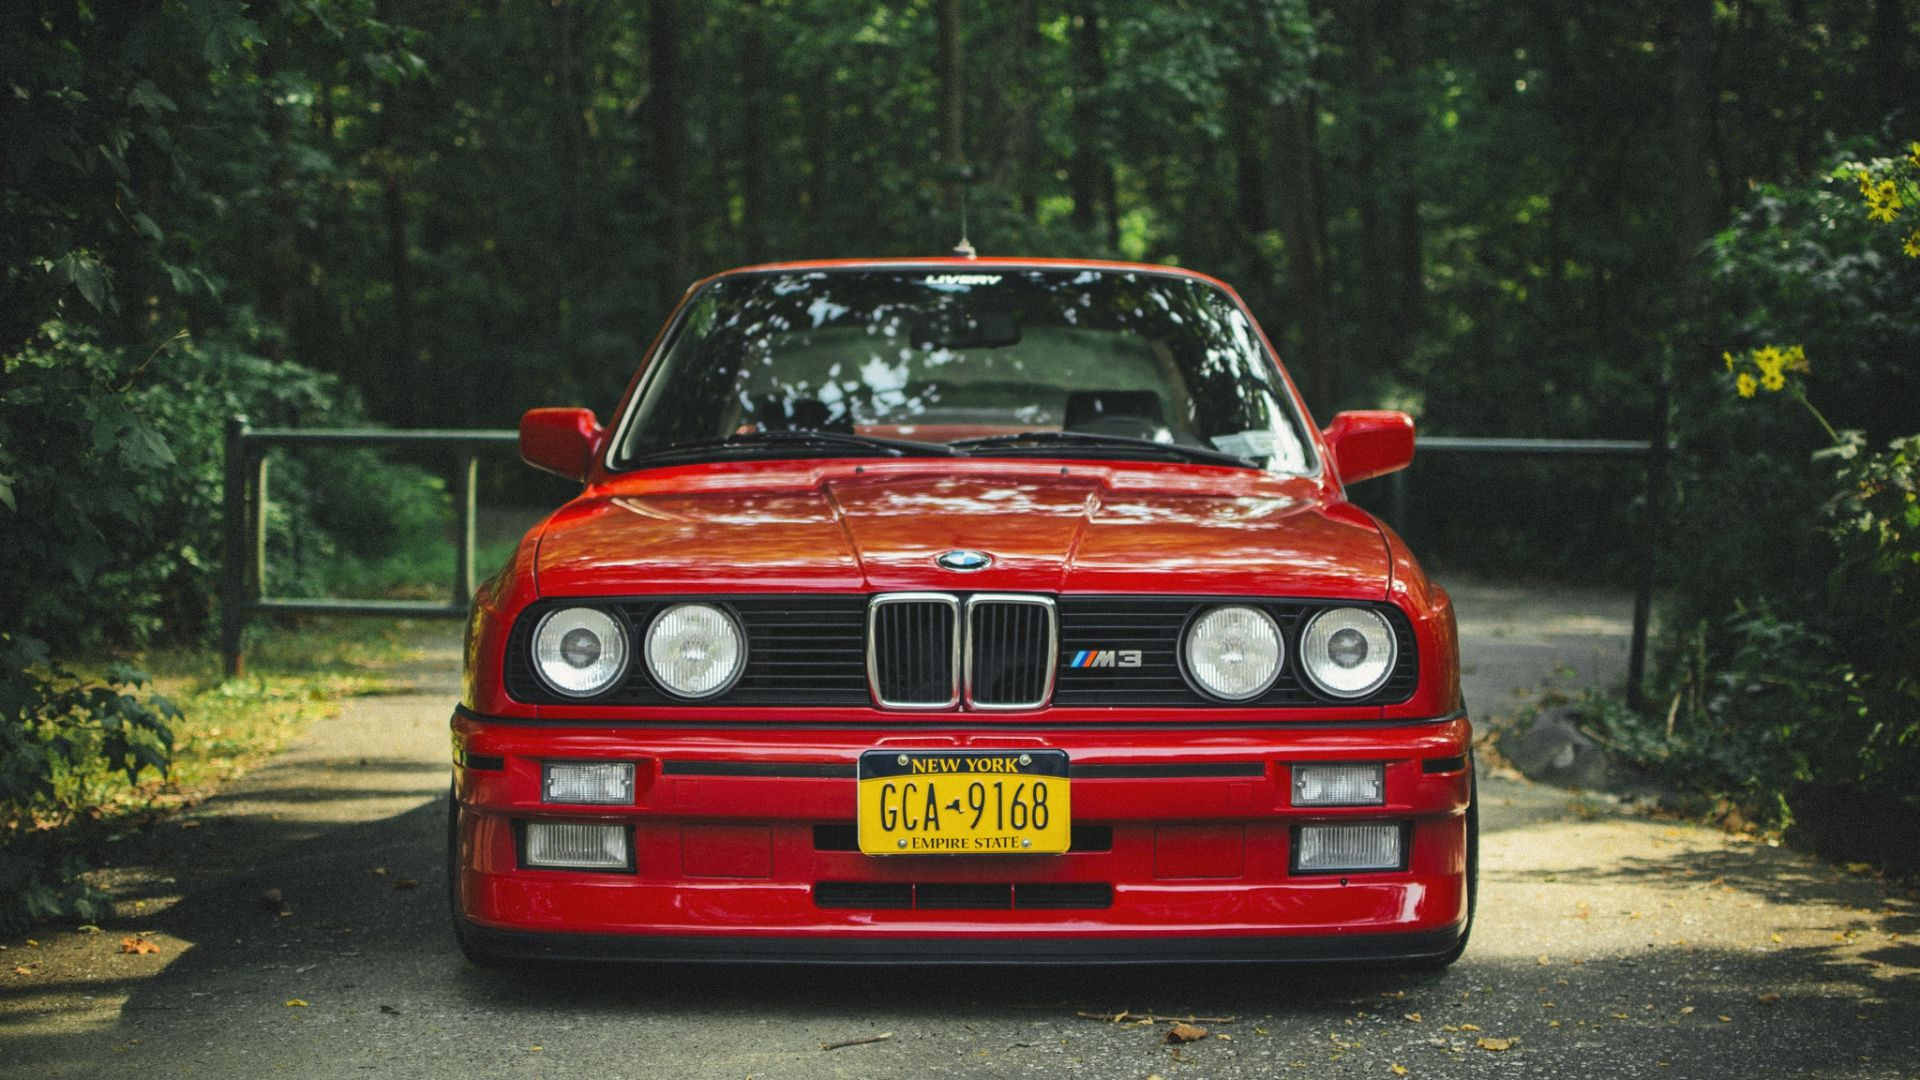 Download Wallpaper 1920x1080 Bmw E30 M3 Red Tuning Full Hd 1080p Hd Background Bmw E30 Bmw E30 M3 Bmw Red